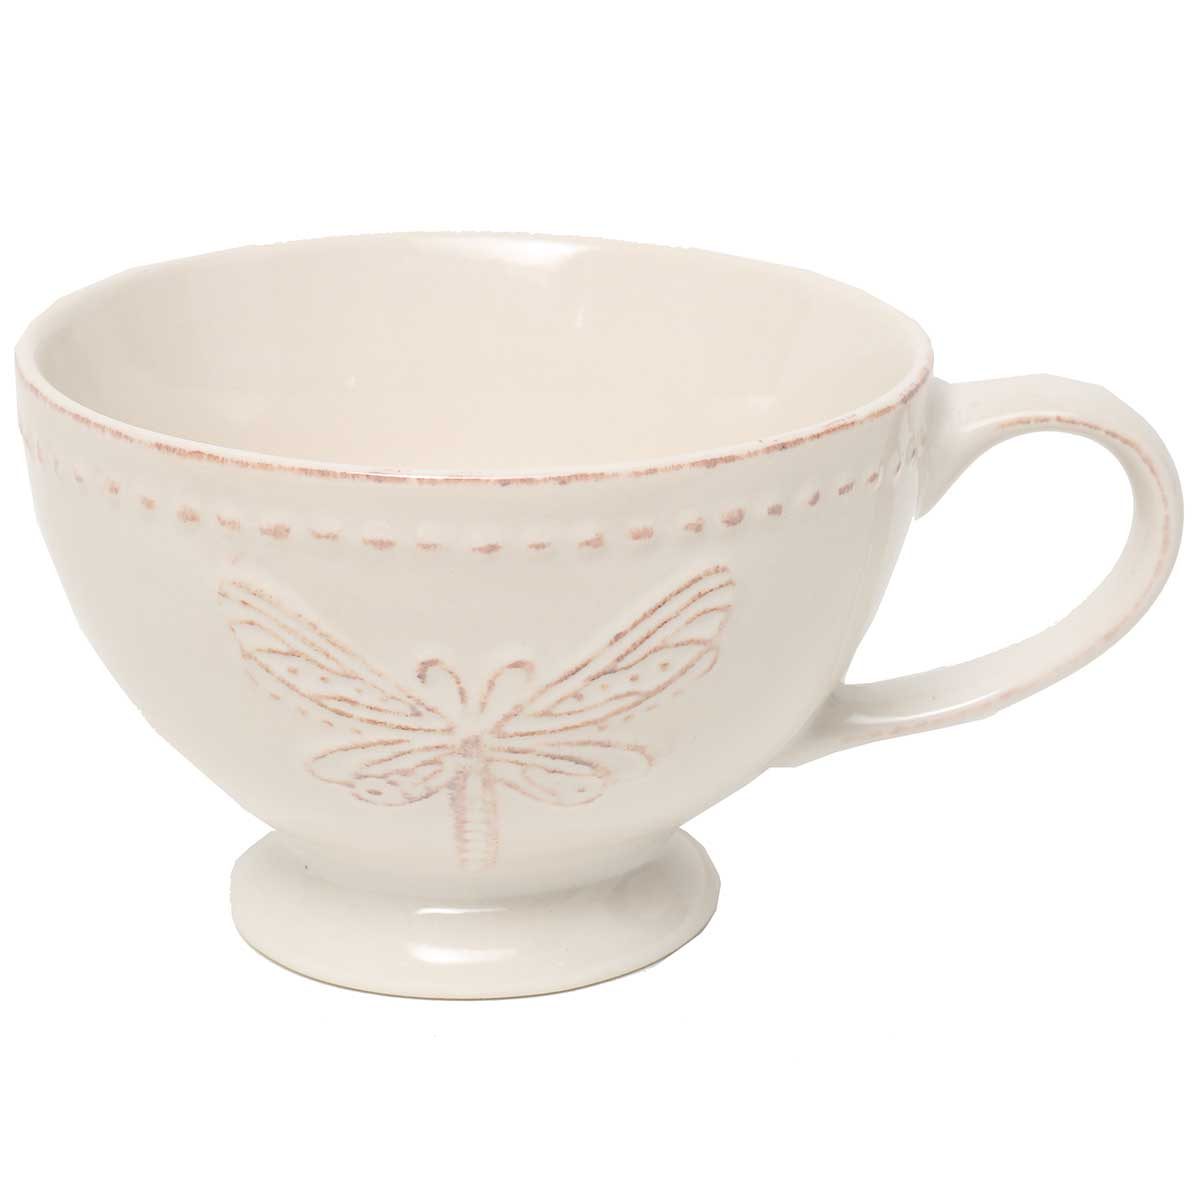 "DRAGONFLY BOWL With HANDLE 7.25""X3.75"" SOUP, MUG"